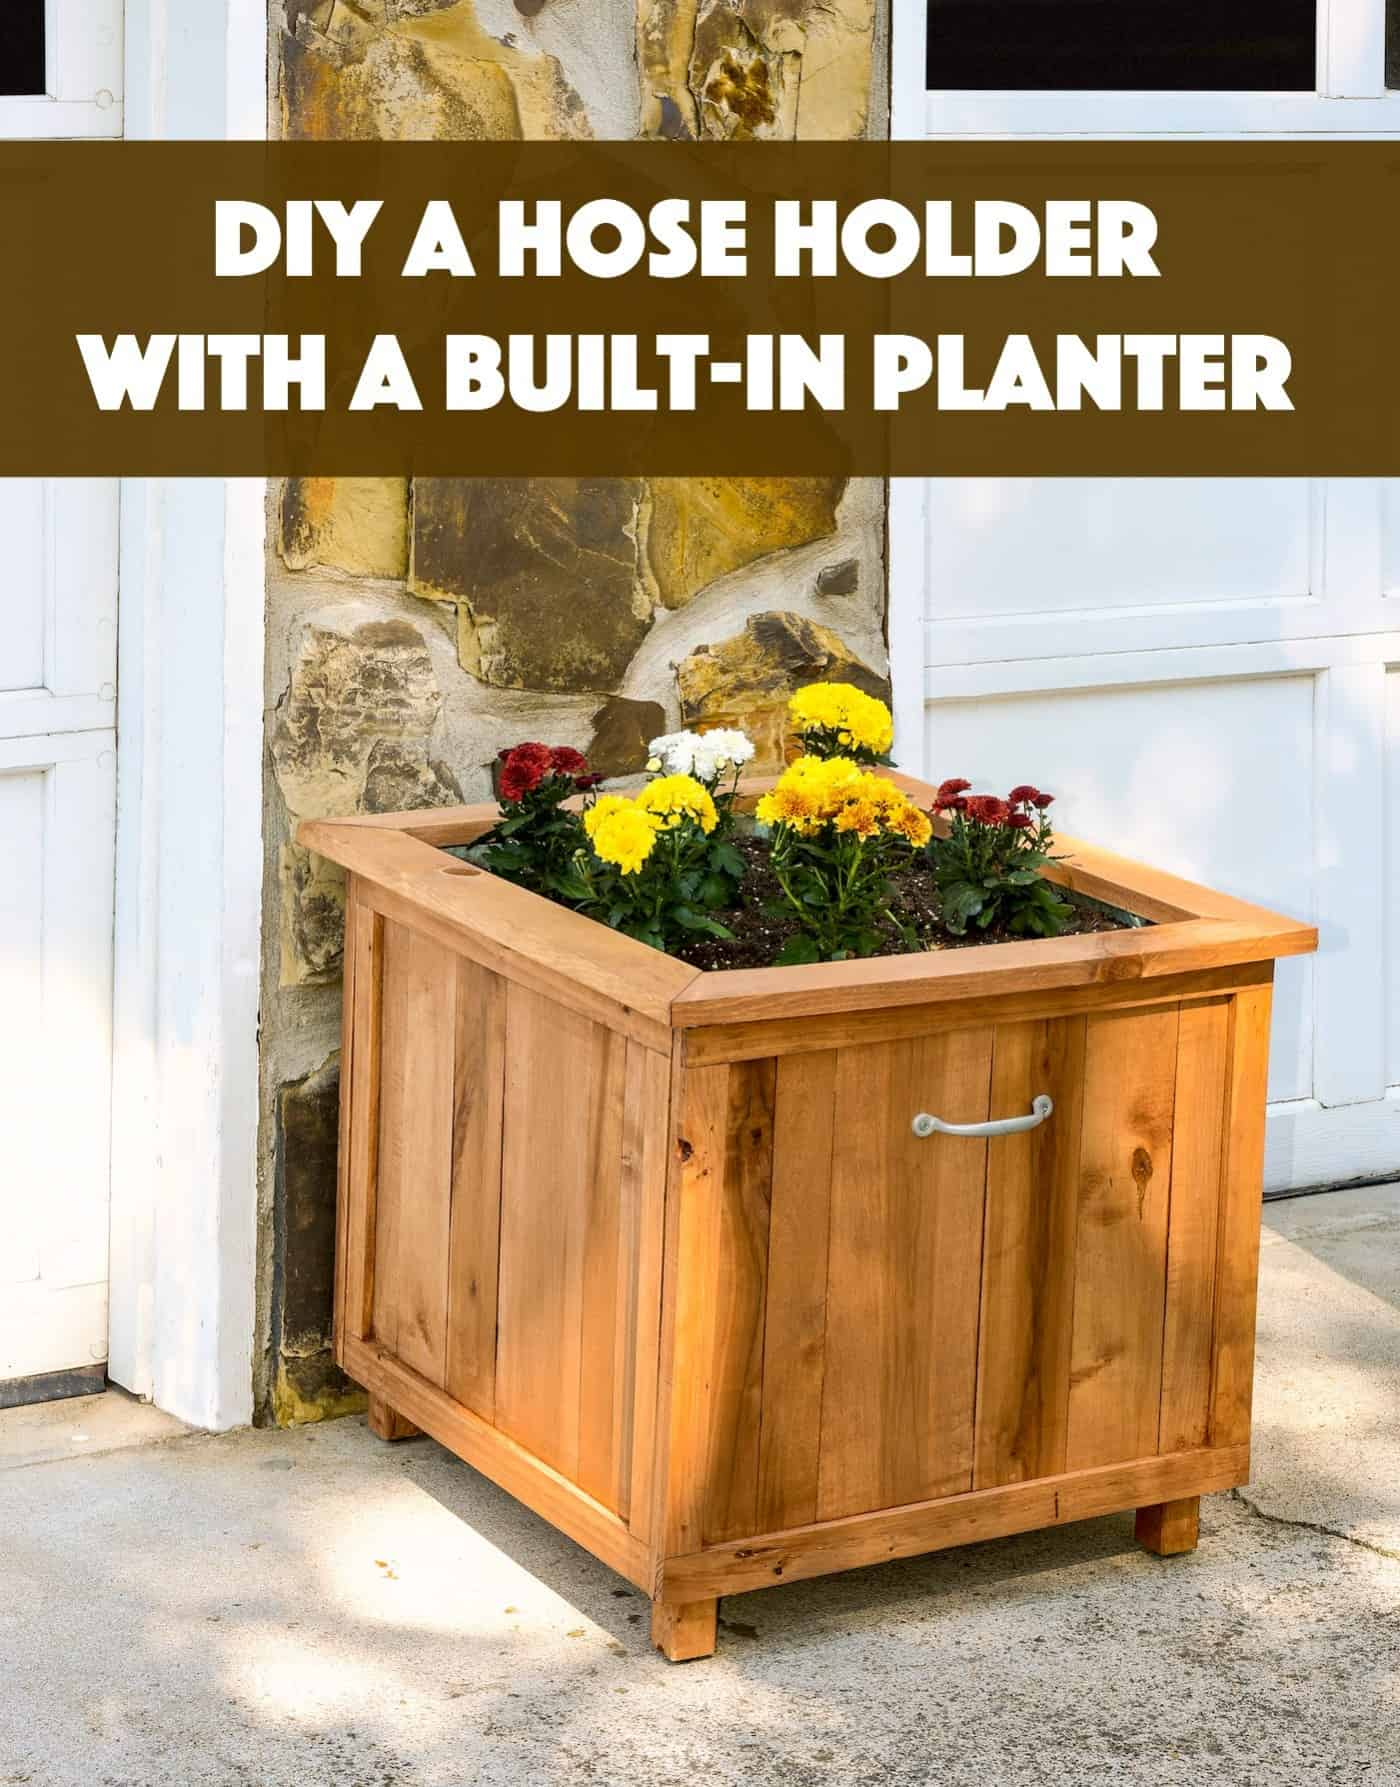 DIY Hose Holder With Built-in Planter Backyard Project